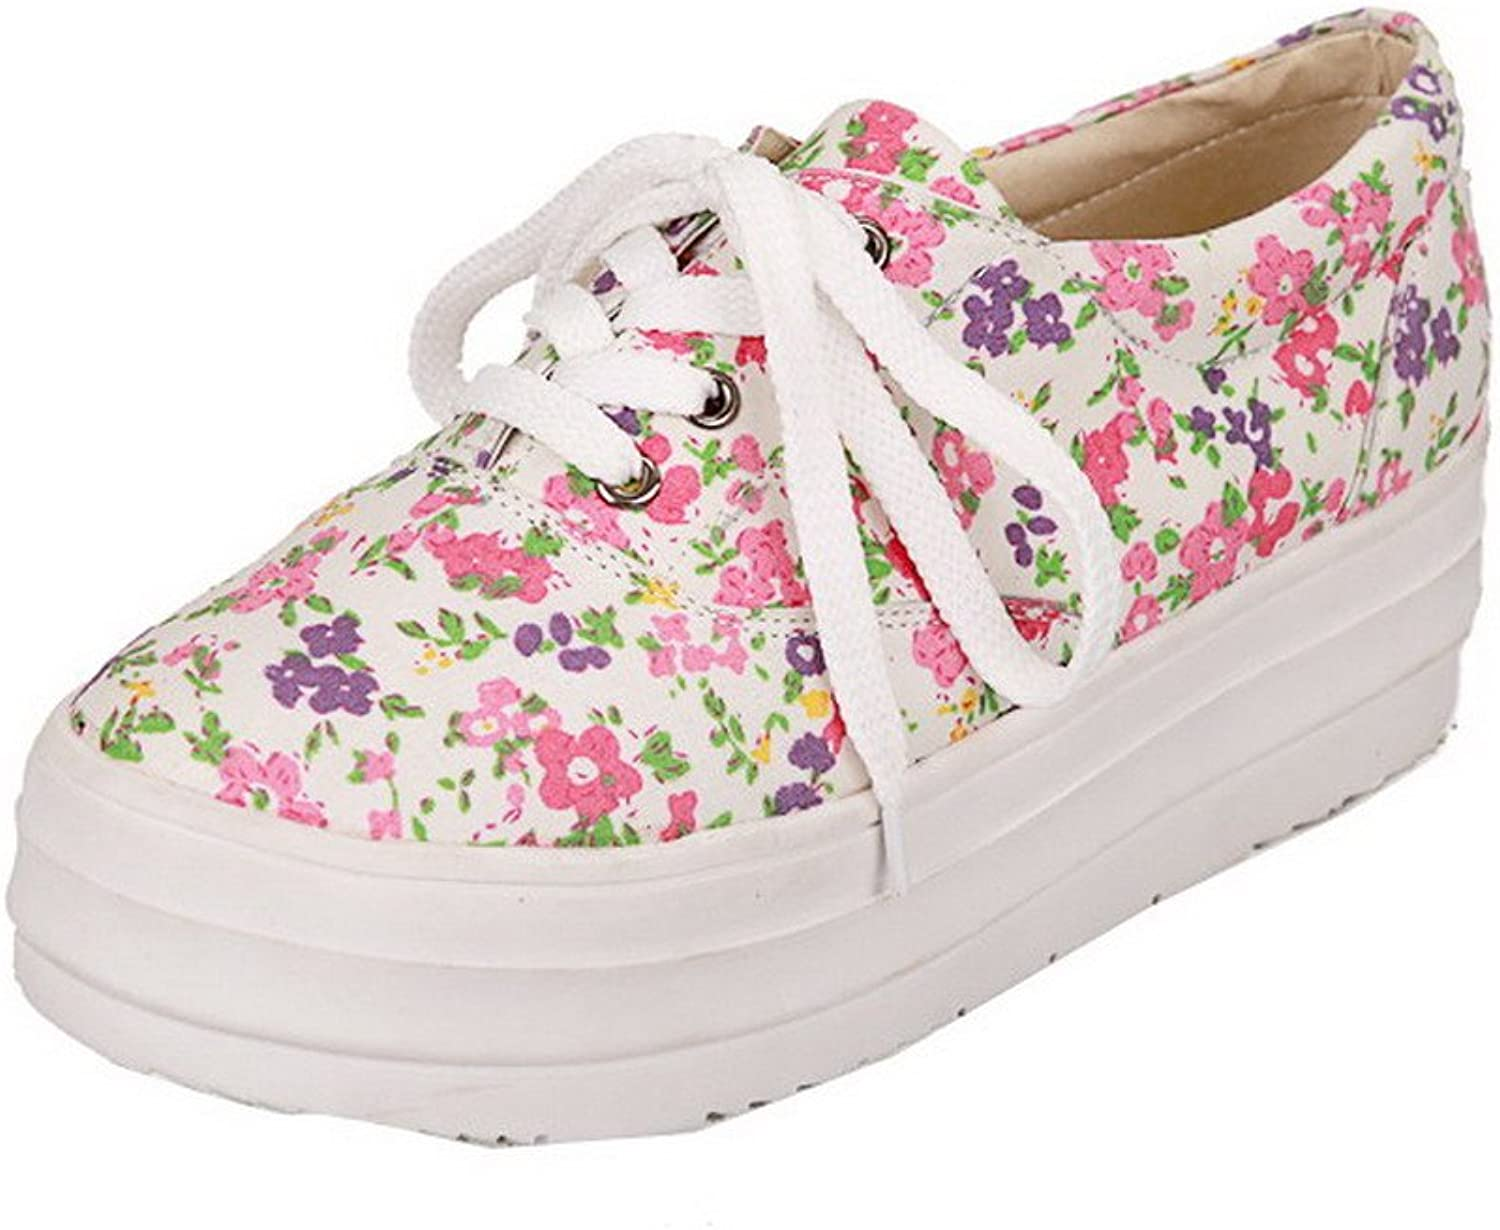 WeiPoot Women's Round Closed Toe Lace-up Fabric Floral Kitten-Heels Pumps-shoes